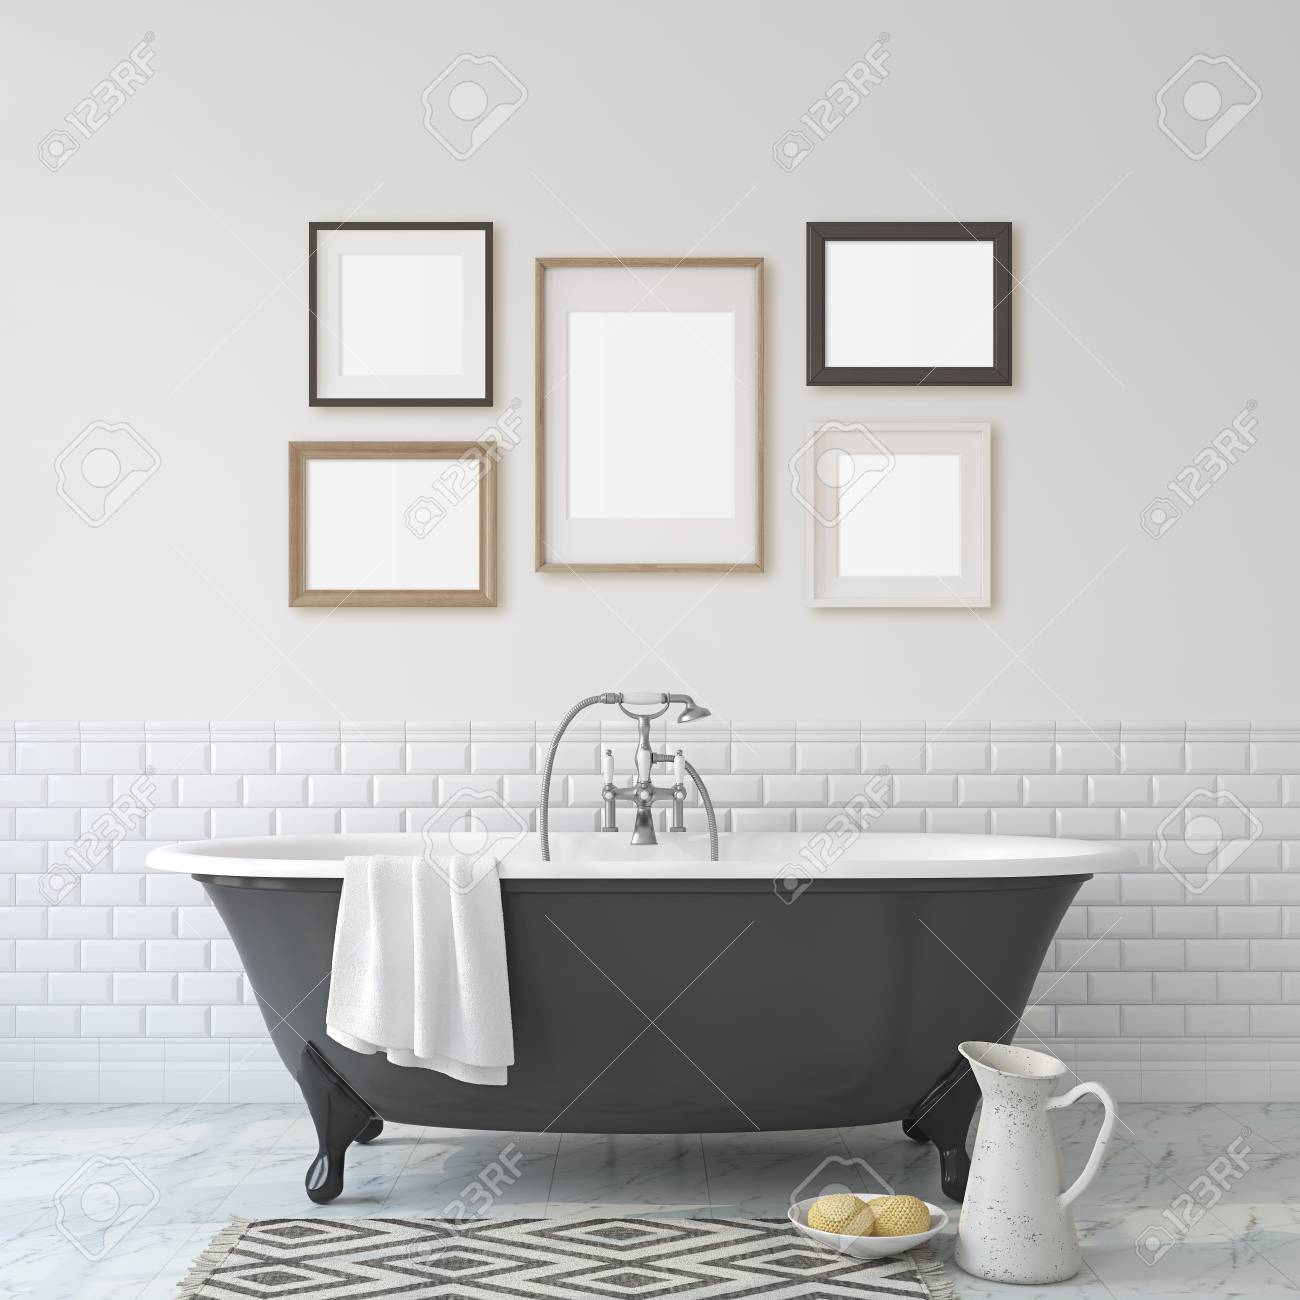 Romance Bathroom Black Bathroom Near White Wall Five Different Stock Photo Picture And Royalty Free Image Image 118411788